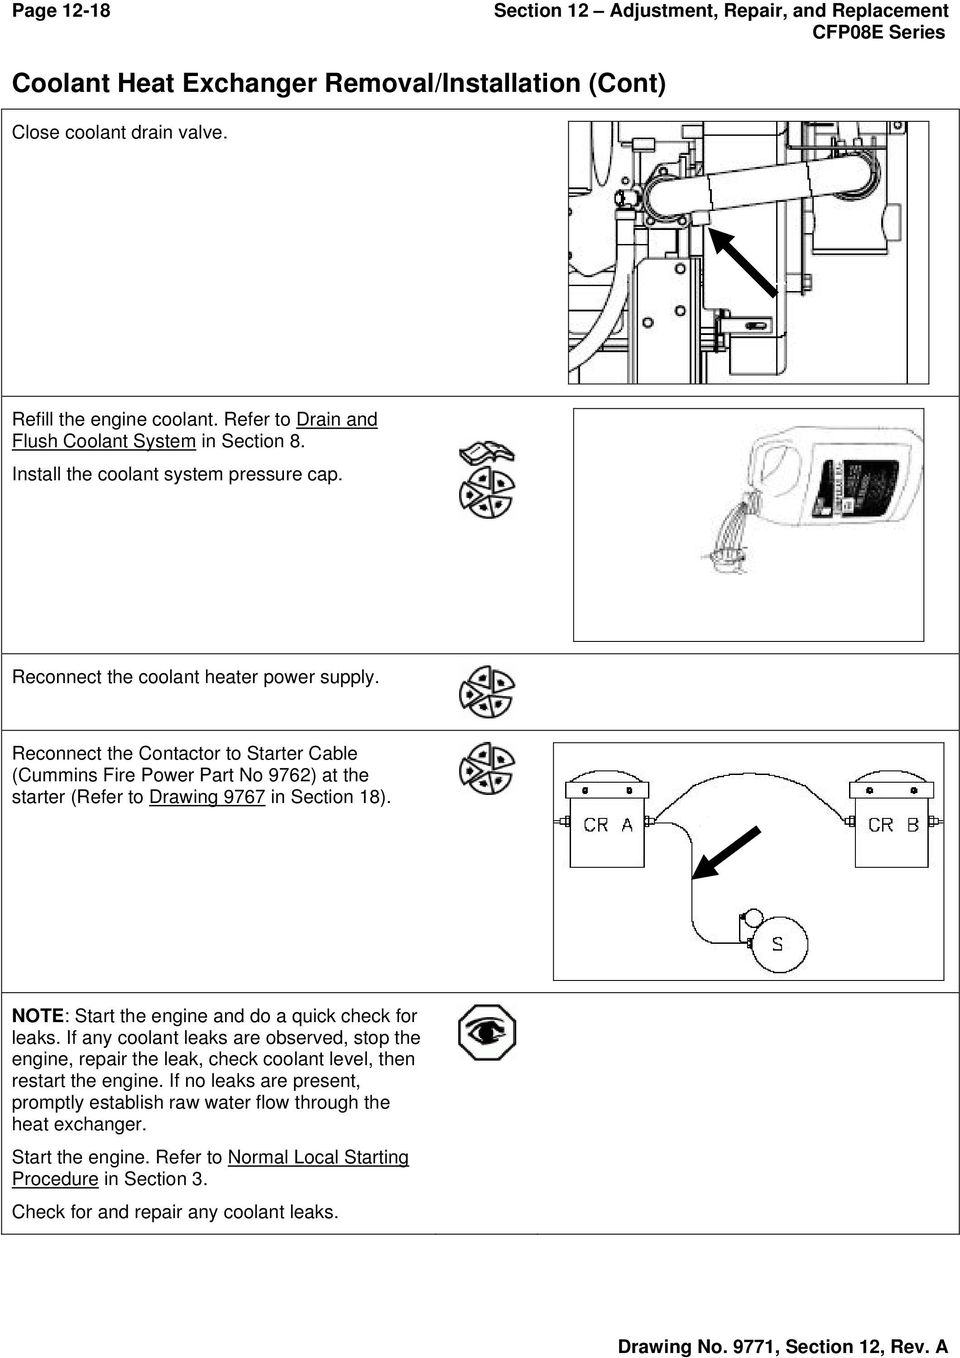 Reconnect the Contactor to Starter Cable (Cummins Fire Power Part No 9762) at the starter (Refer to Drawing 9767 in Section 18). NOTE: Start the engine and do a quick check for leaks.